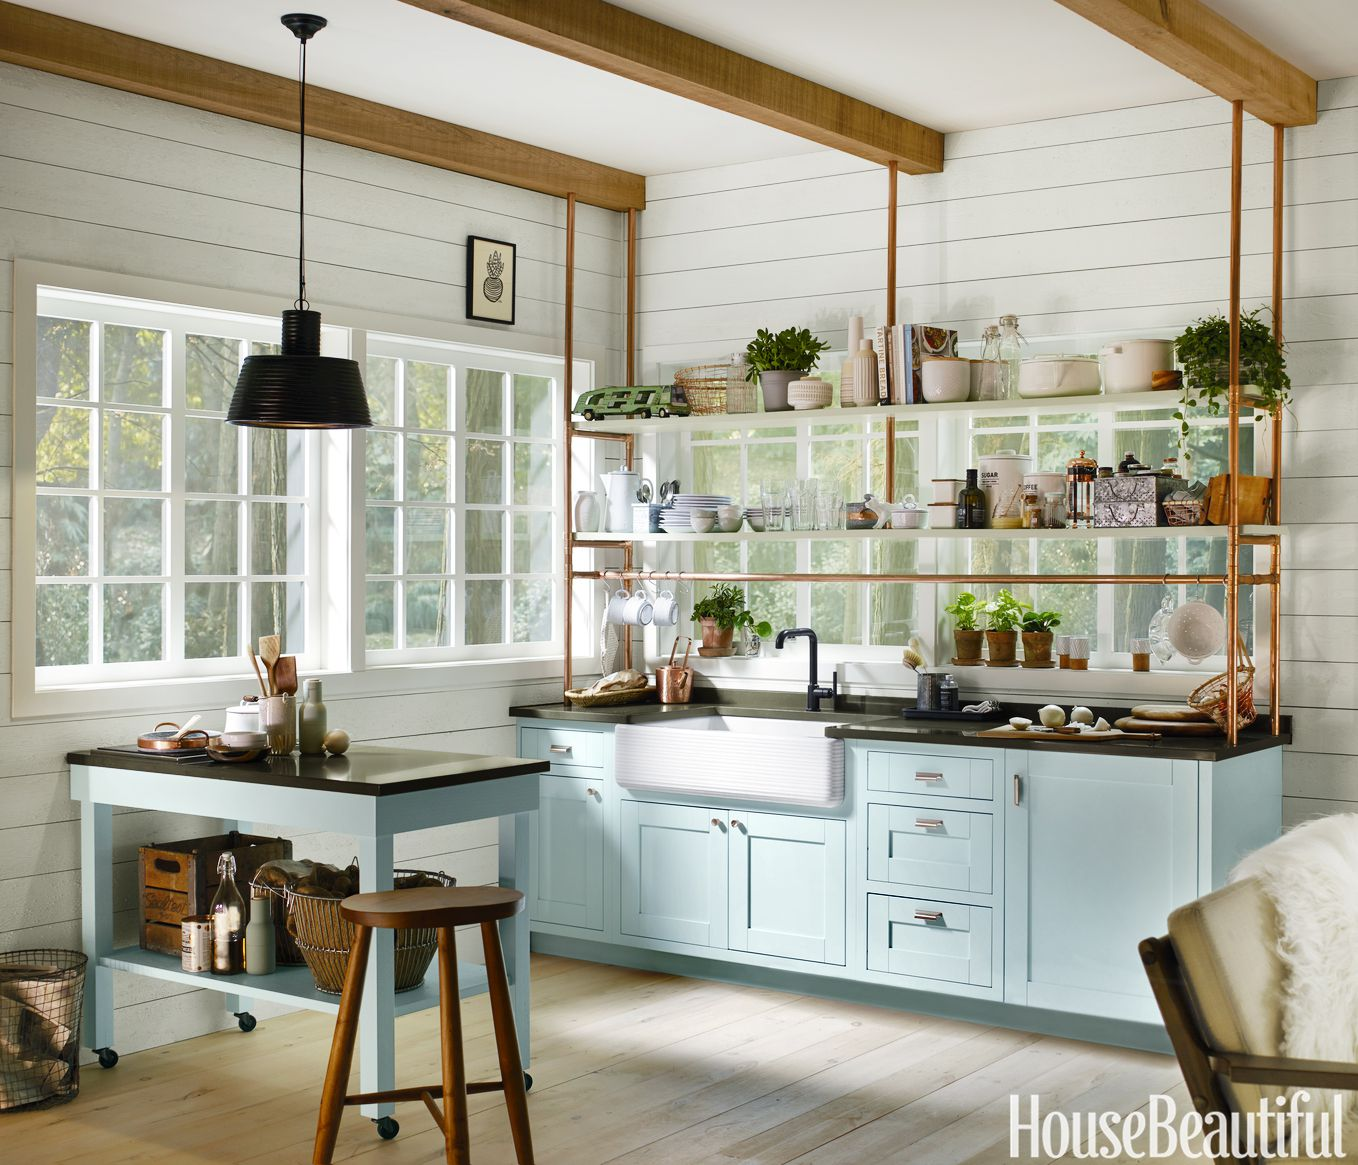 Small Kitchen Design 40+ best small kitchen design ideas - decor solutions for small kitchens XKHADZG